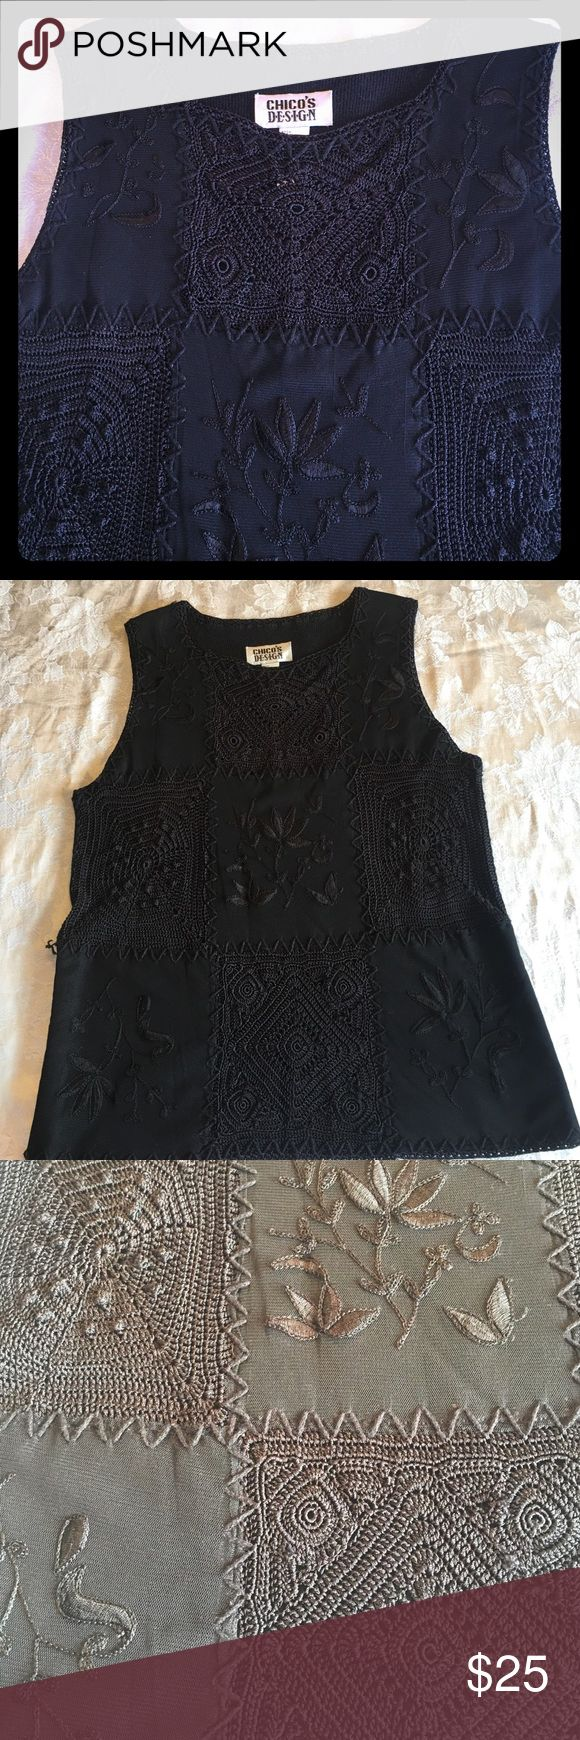 Chico's gorgeous linen Cotten shell - size 2 This blouse has such detail with crochet, embroidery & netting. The detail is subtle yet makes a big statement. I see 2 places where the stitching needs to be attached. It's not torn, just needs to be tacked down Chico's Tops Blouses